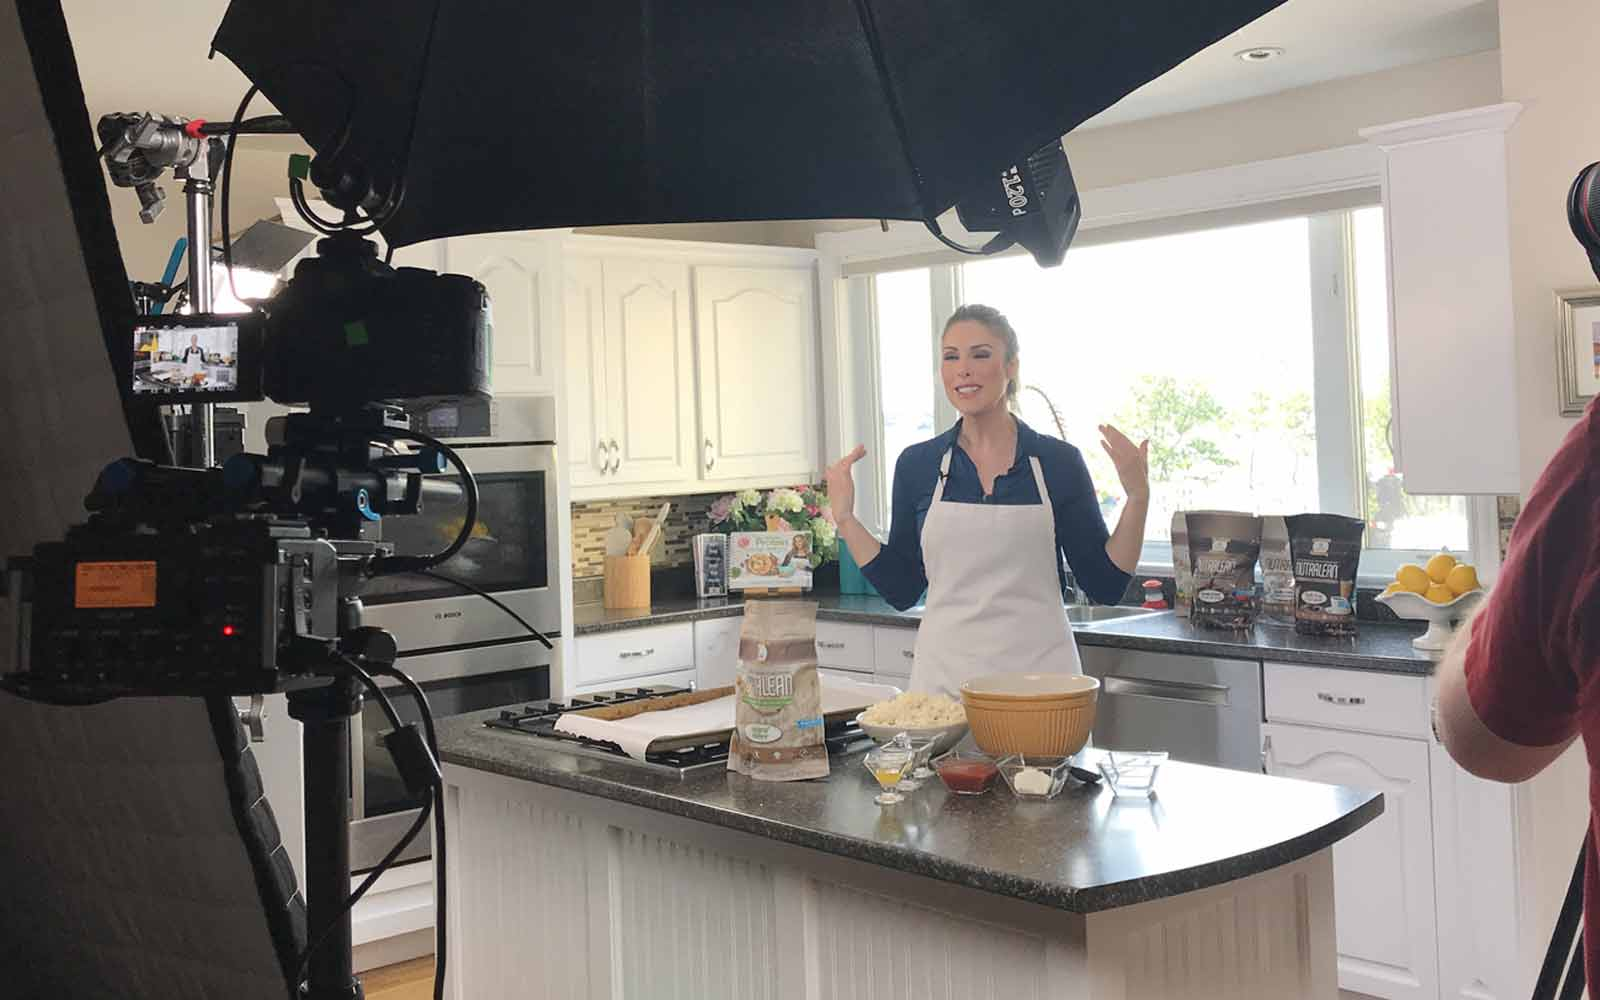 Melanie's Kitchen: No-Bake Healthy Holiday Treats! Live Video!